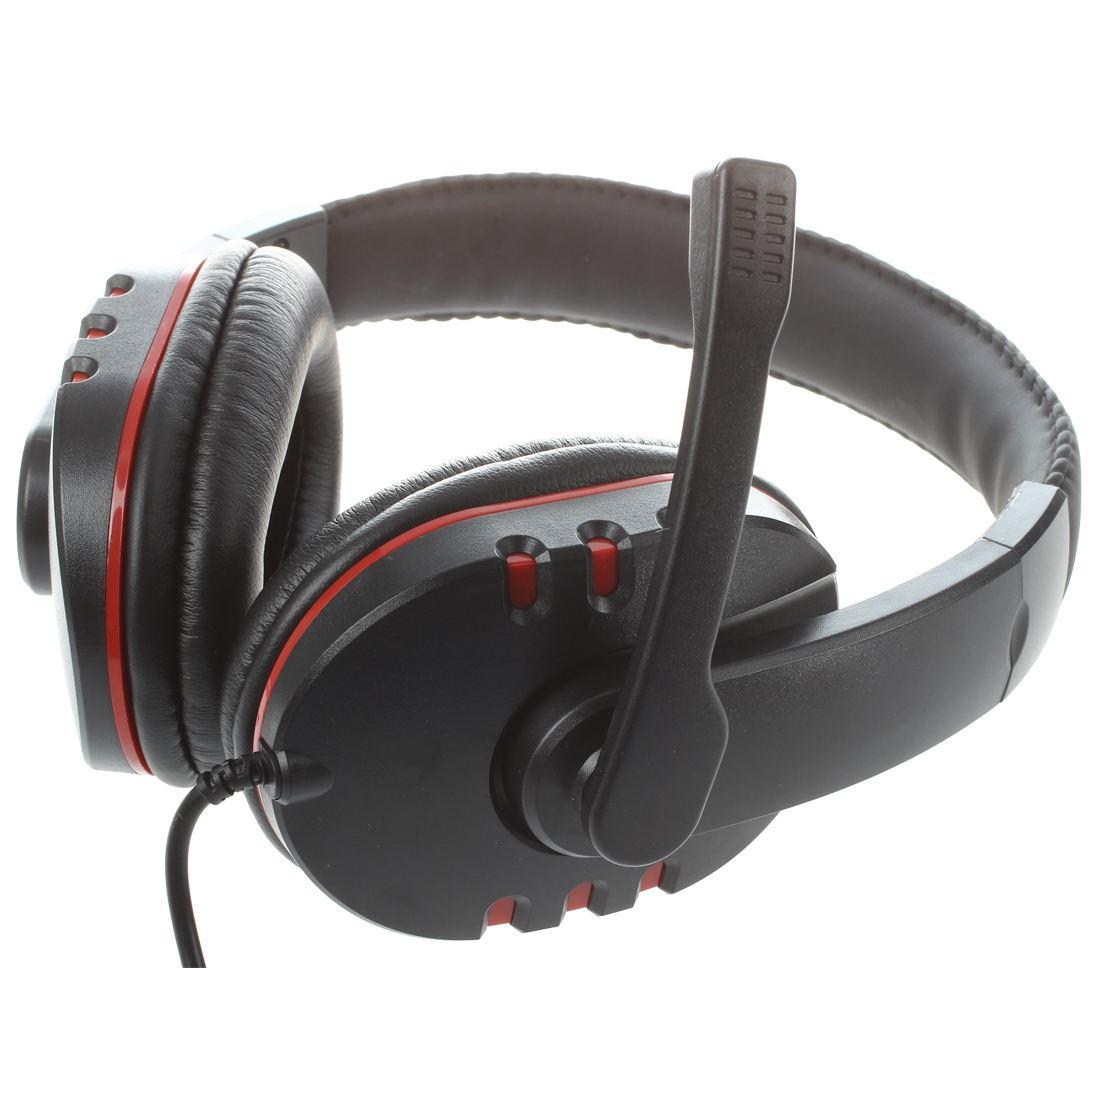 Brand New Headset Earphone with Mic Microphone for PS3 Headphone Black